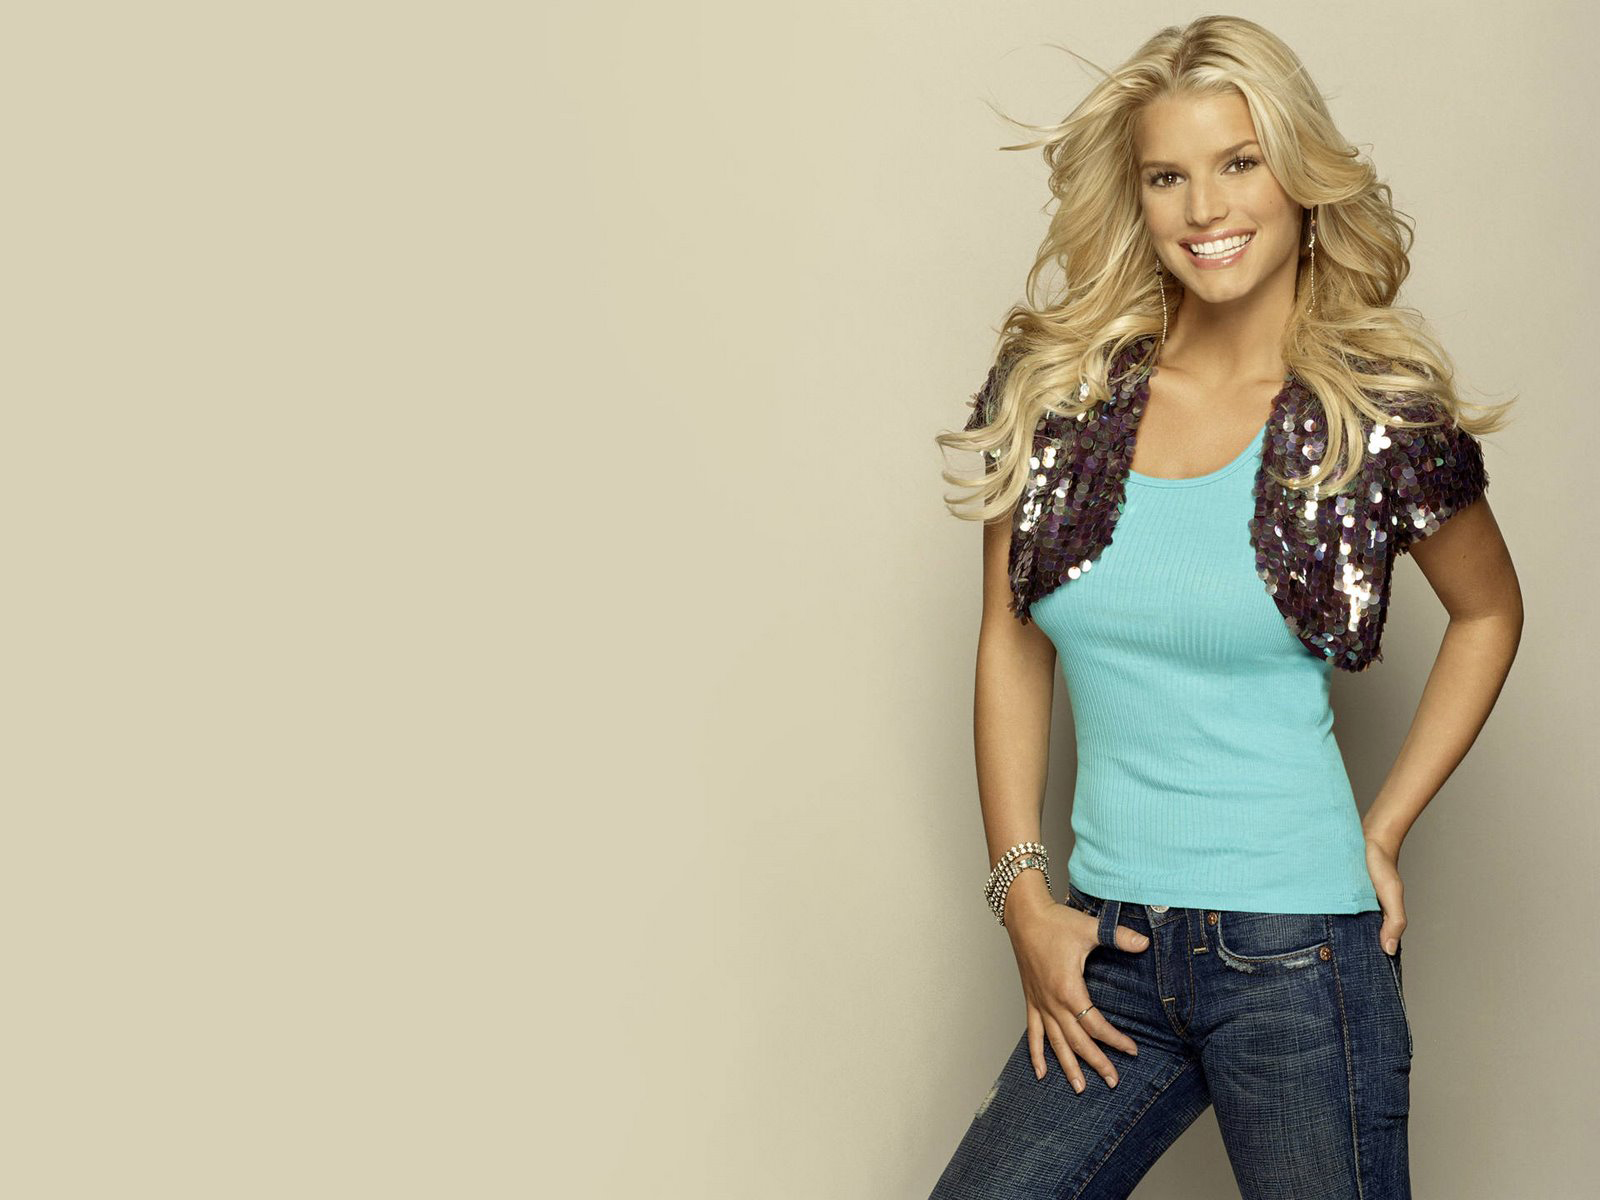 babe jessica simpson wallpapers jessica simpson wallpaper hd 29jpg 1600x1200